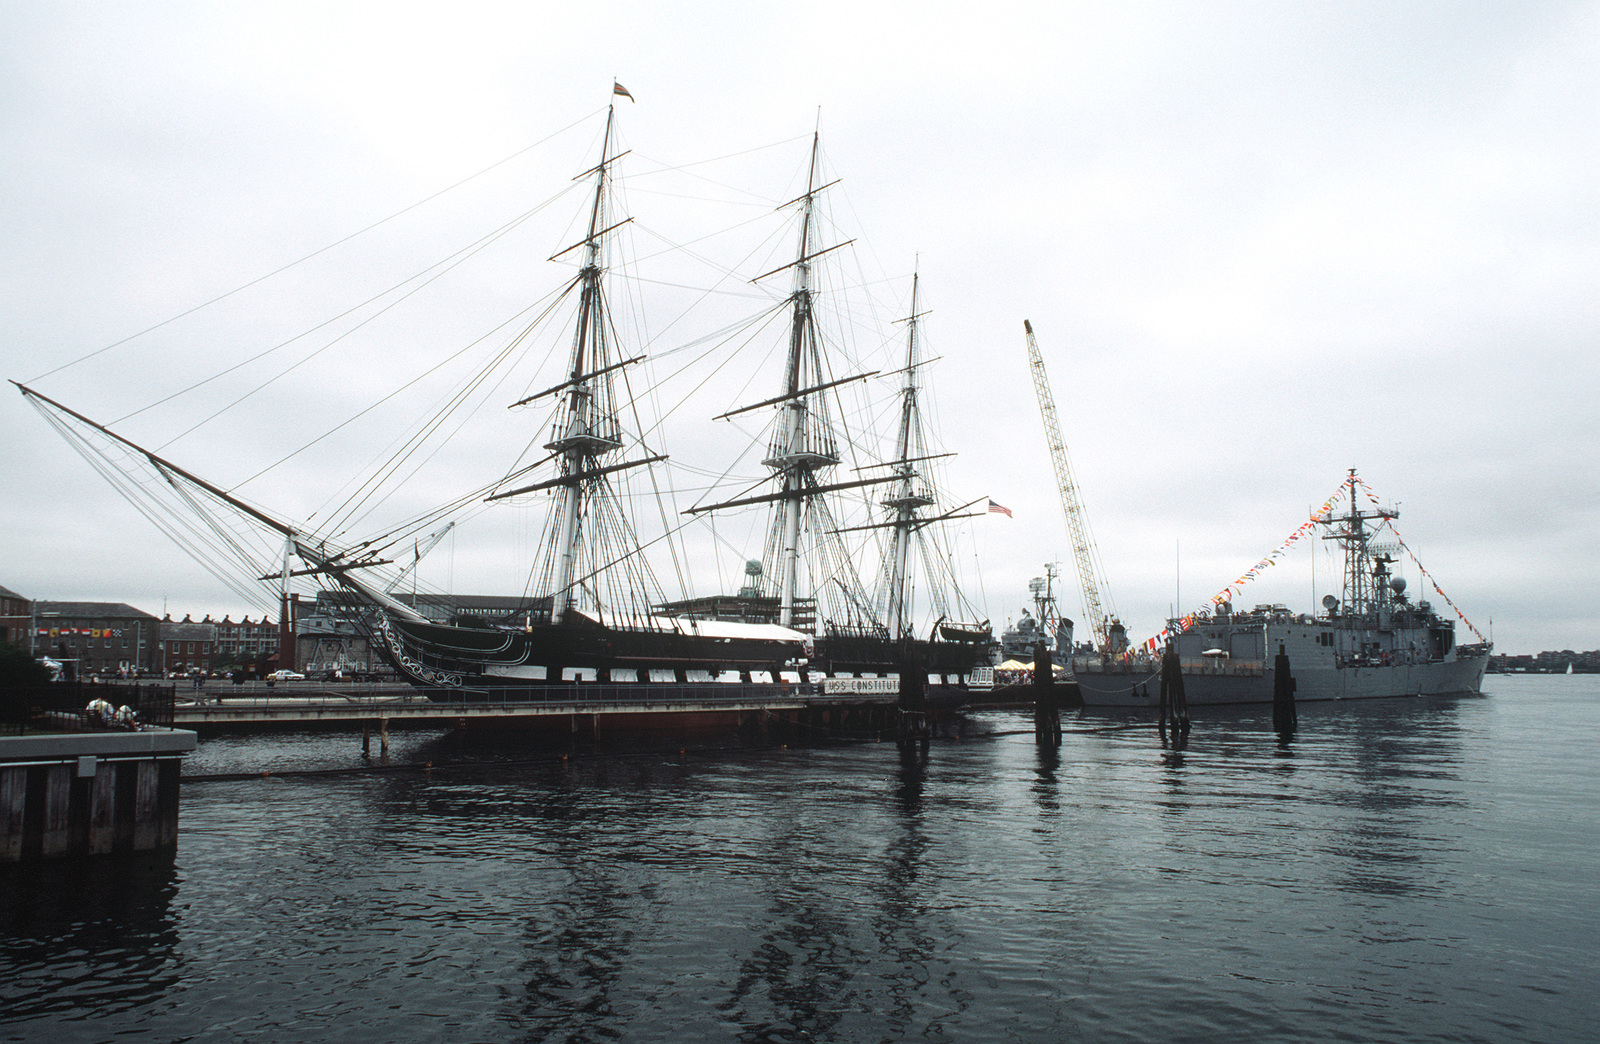 A port bow view of the 44-gun sail frigate USS CONSTITUTION tied up at its berth at the Charlestown Navy Yard